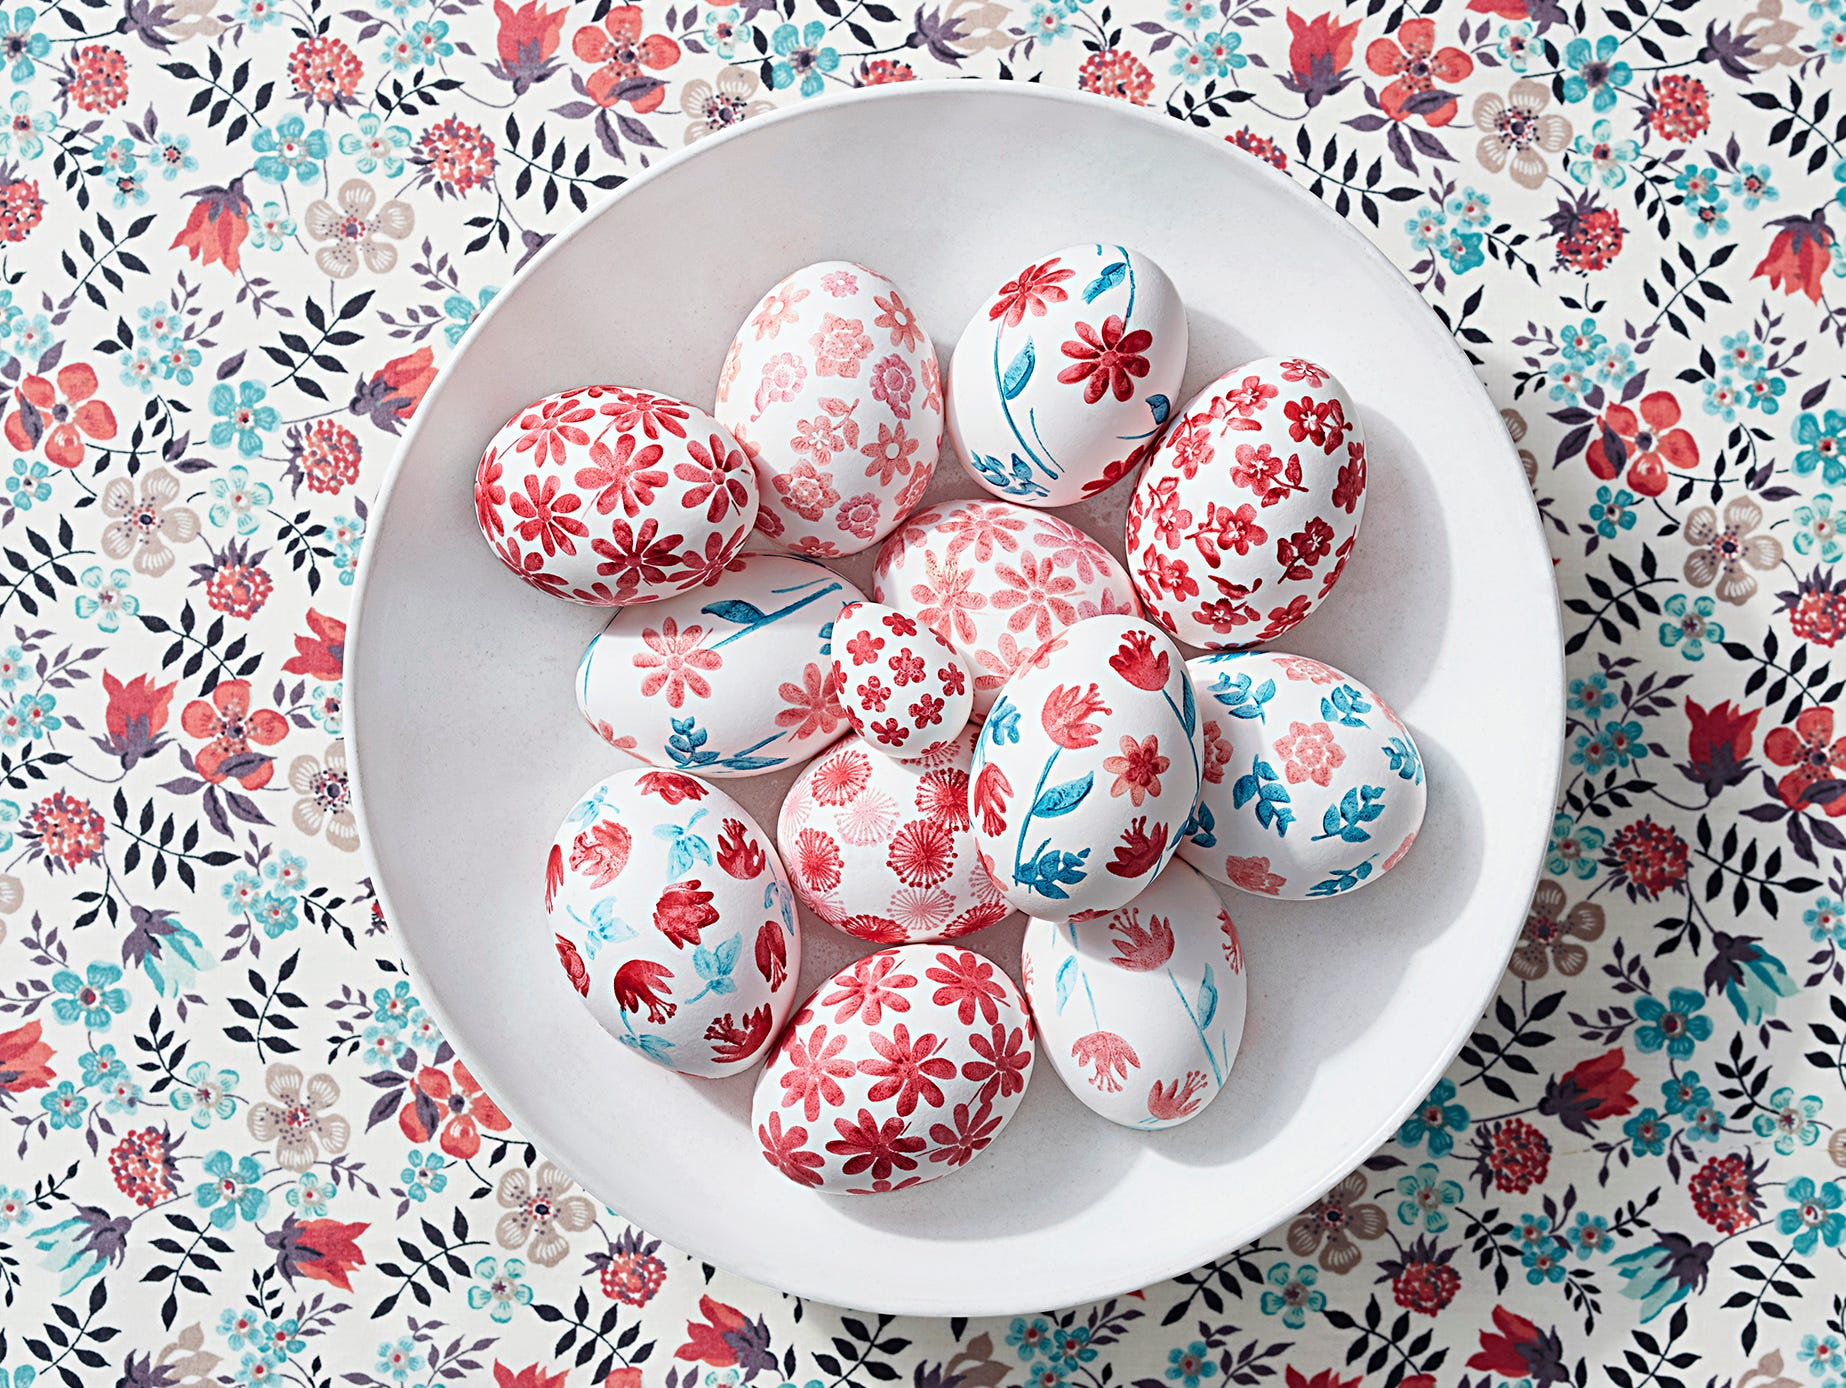 his Easter, outfit eggs in designs that take a cue from classic yet cool fashion textiles